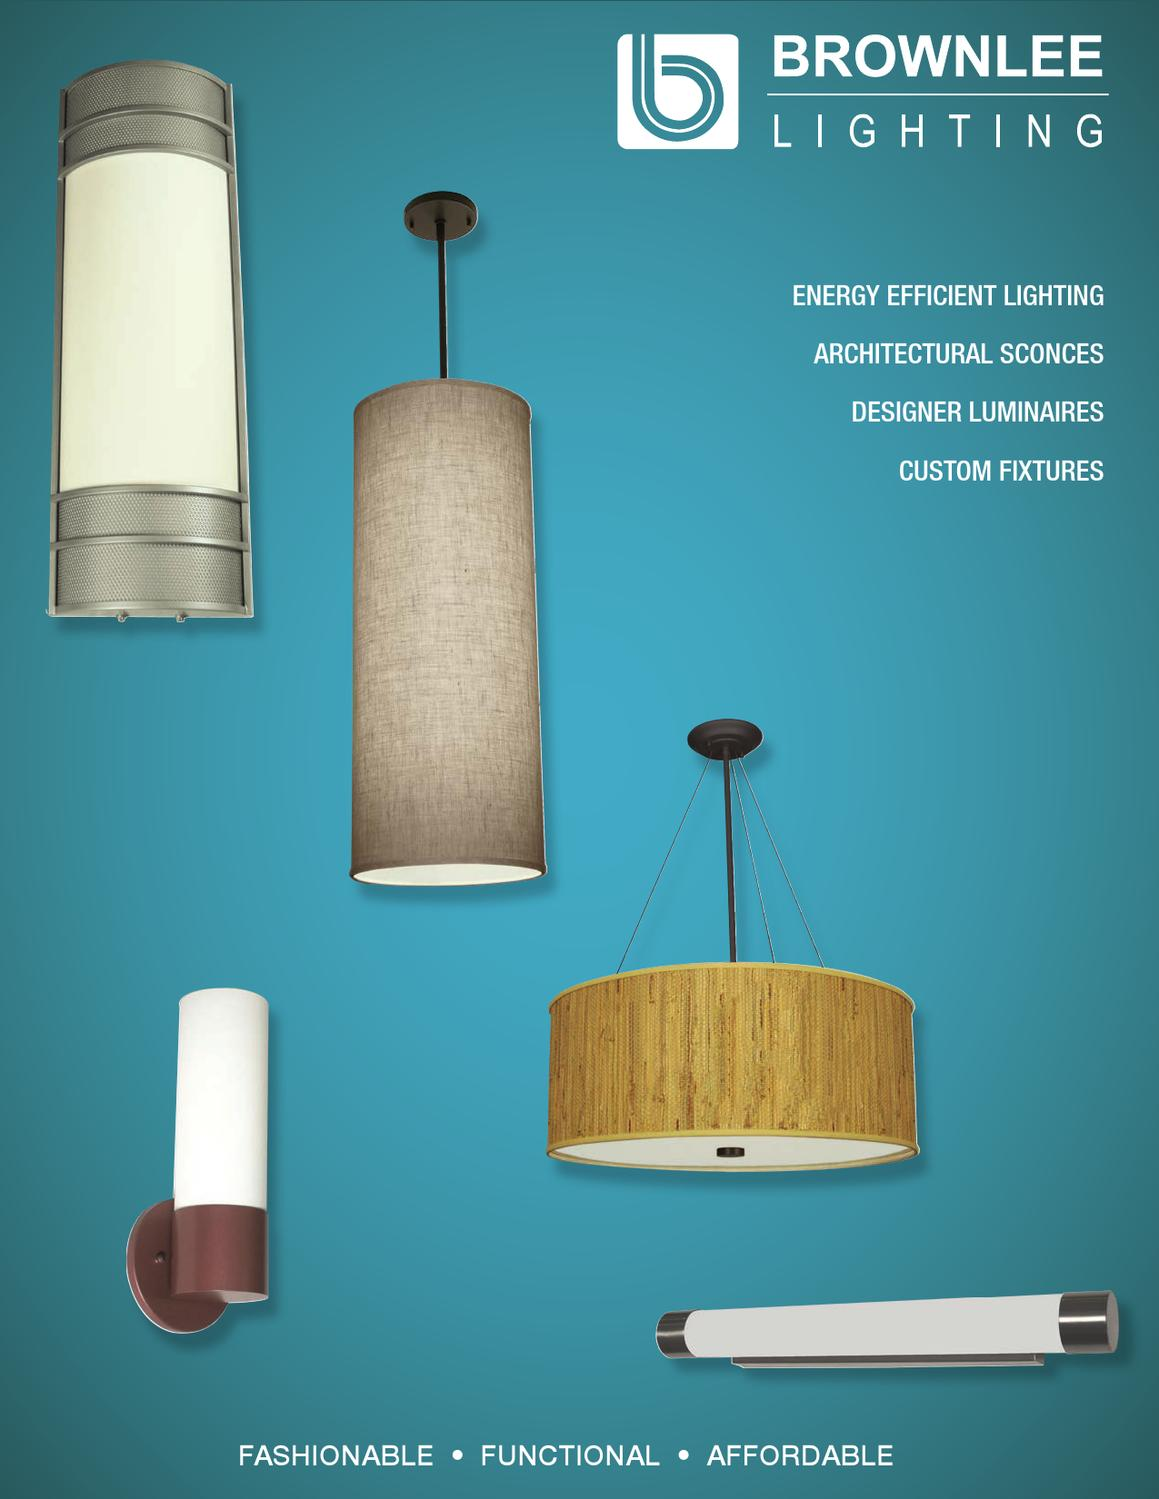 Brownlee Lighting 2017 Product Catalog By